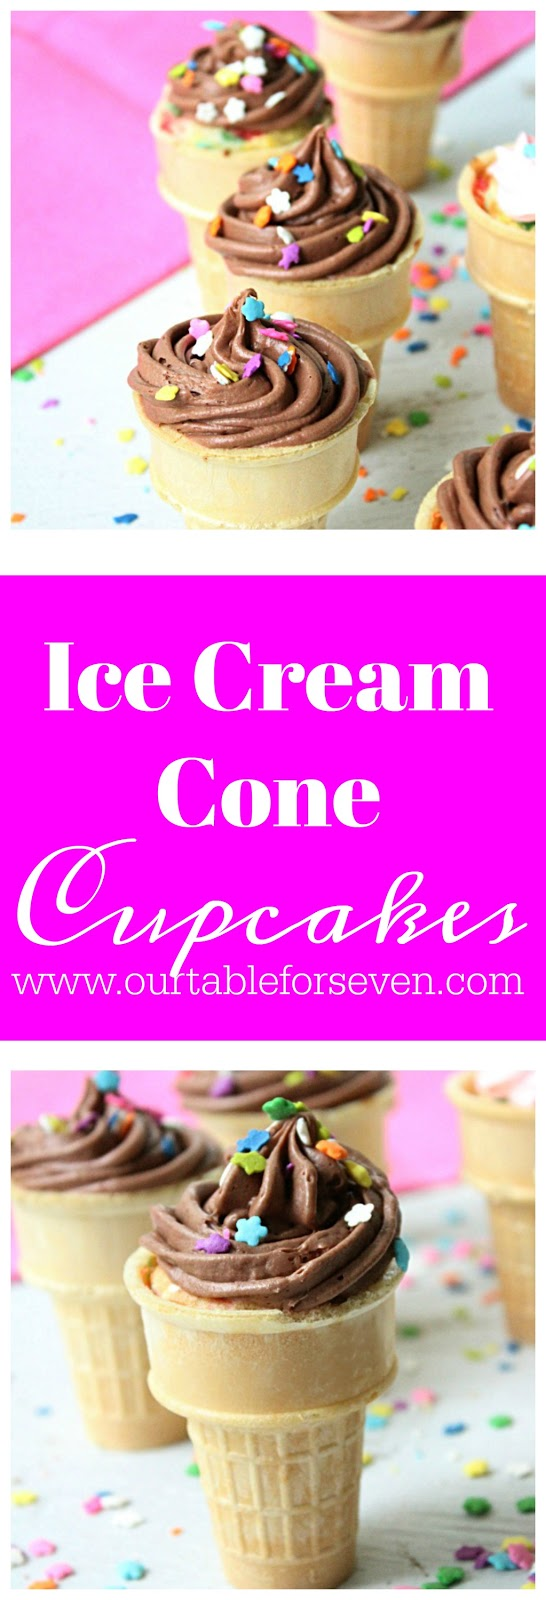 Ice Cream Cone Cupcakes from Table for Seven: A fun and simple twist on cupcakes